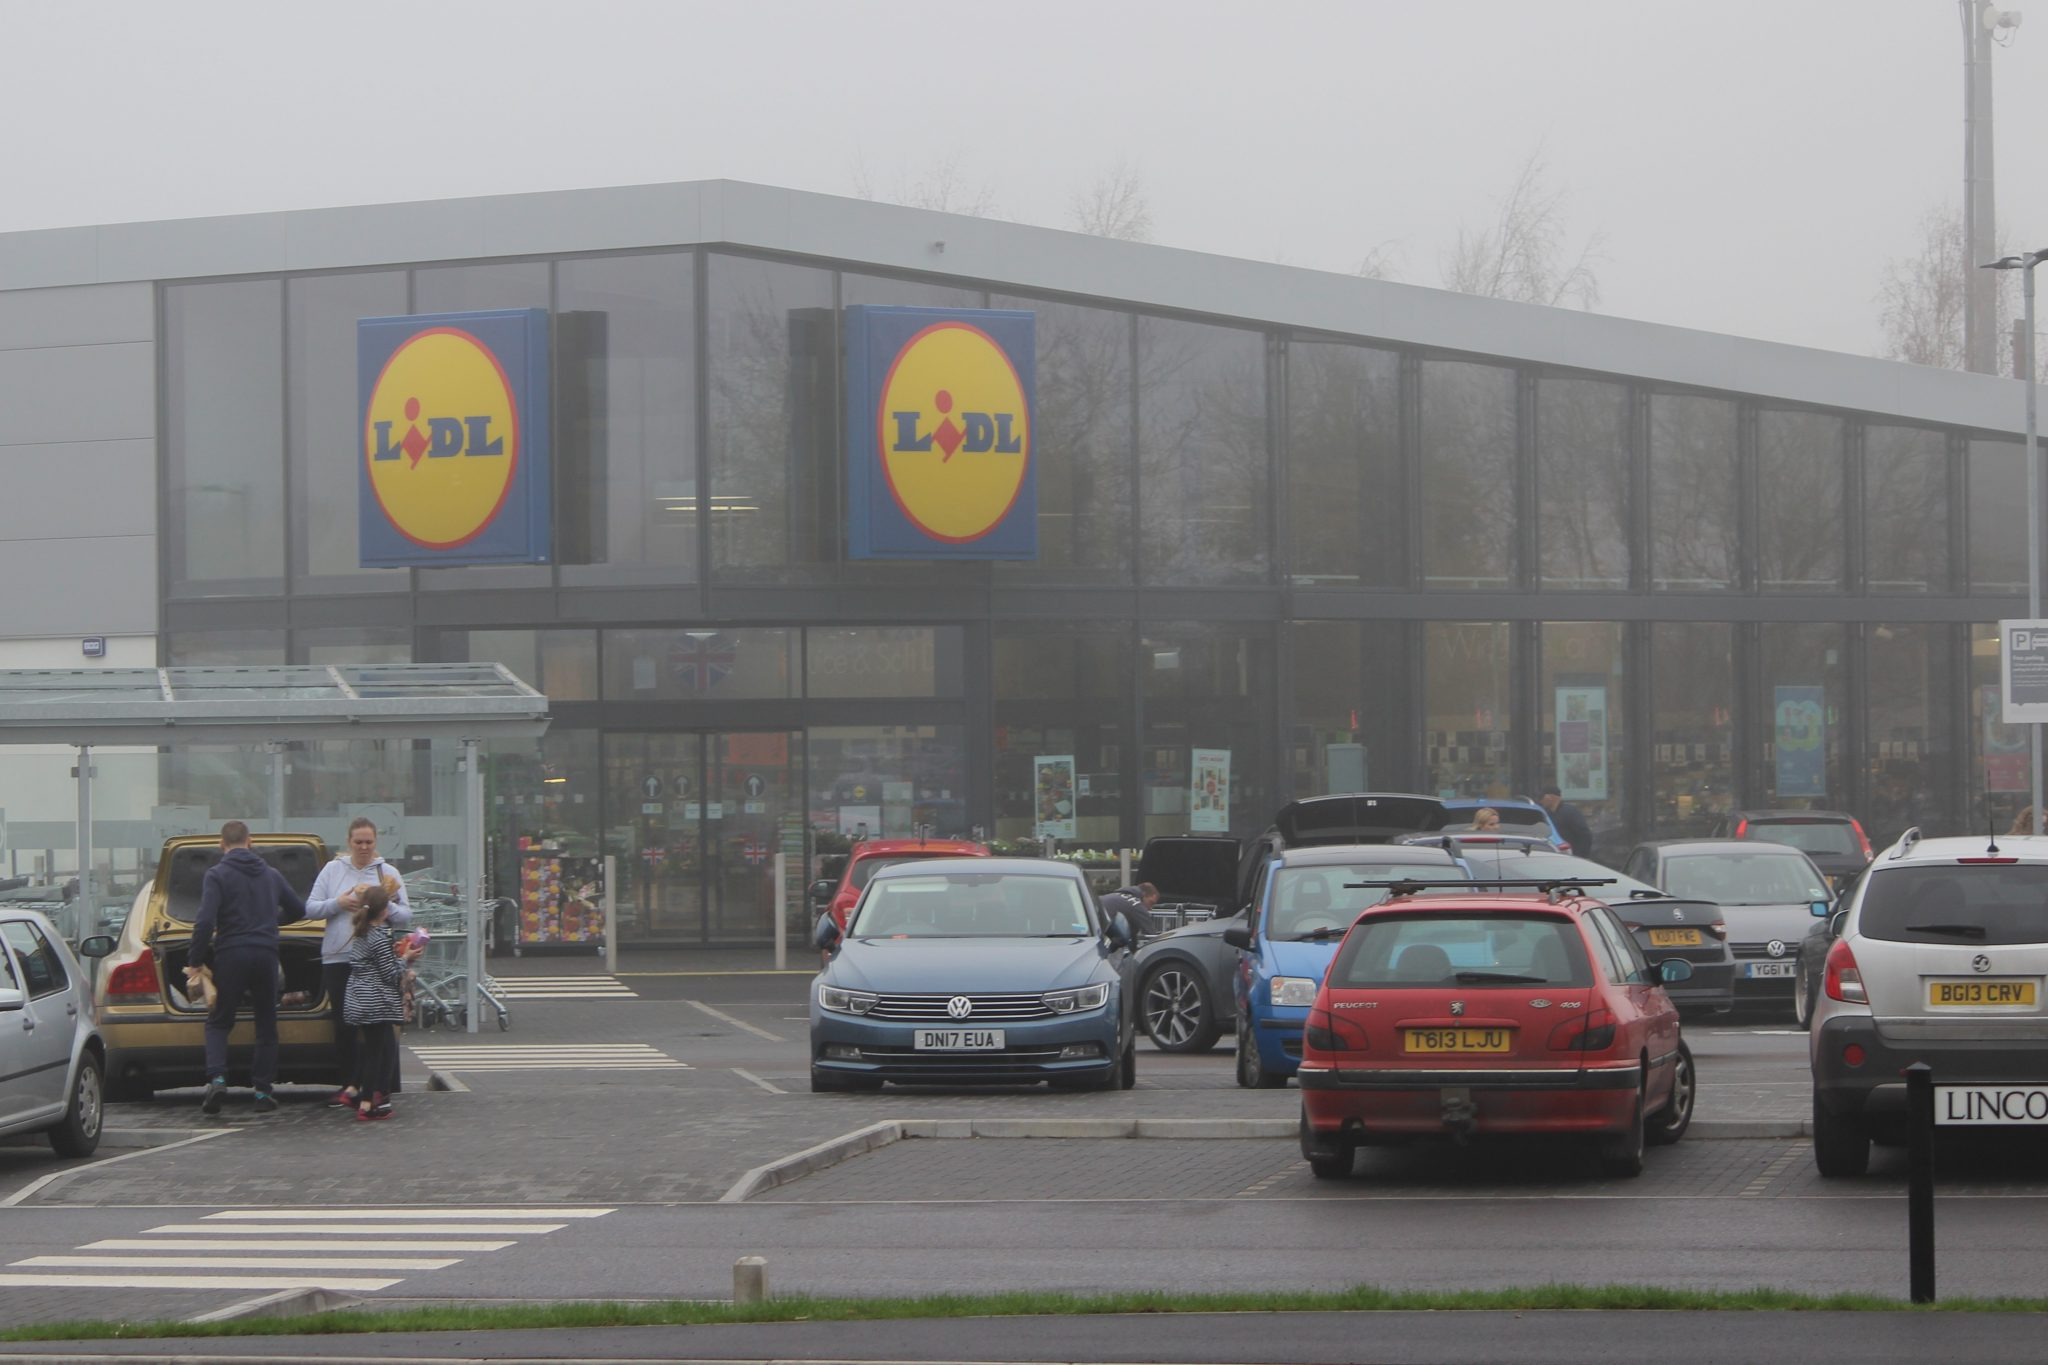 Rattan Furniture 2 Go based behind Lidl Store on Lincoln Road Peterborough